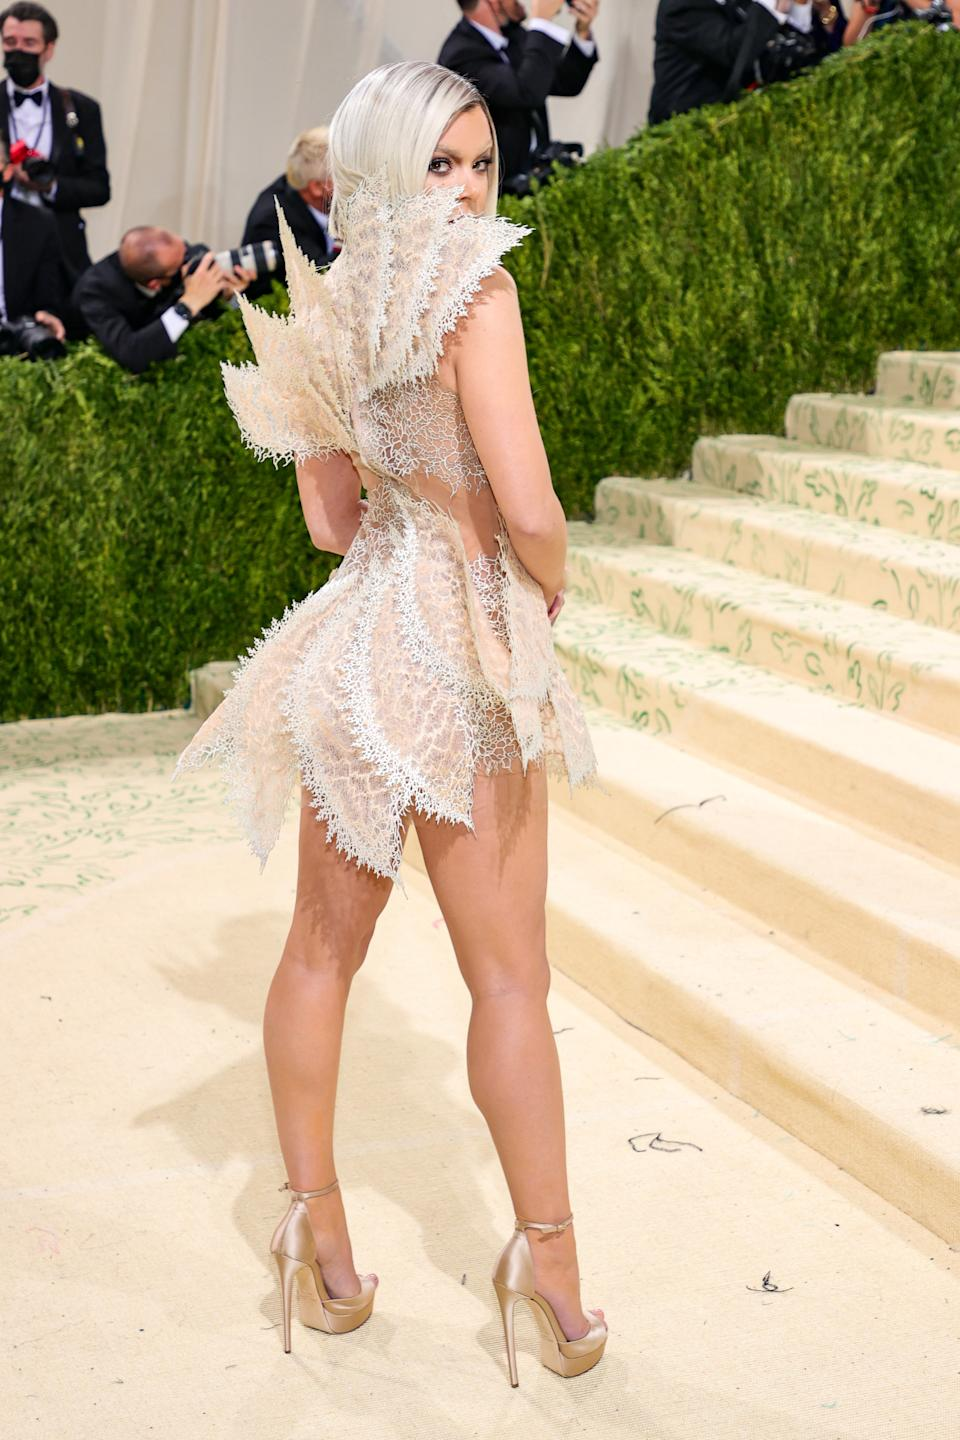 NEW YORK, NEW YORK - SEPTEMBER 13: Hailee Steinfeld attends The 2021 Met Gala Celebrating In America: A Lexicon Of Fashion at Metropolitan Museum of Art on September 13, 2021 in New York City. (Photo by Theo Wargo/Getty Images)